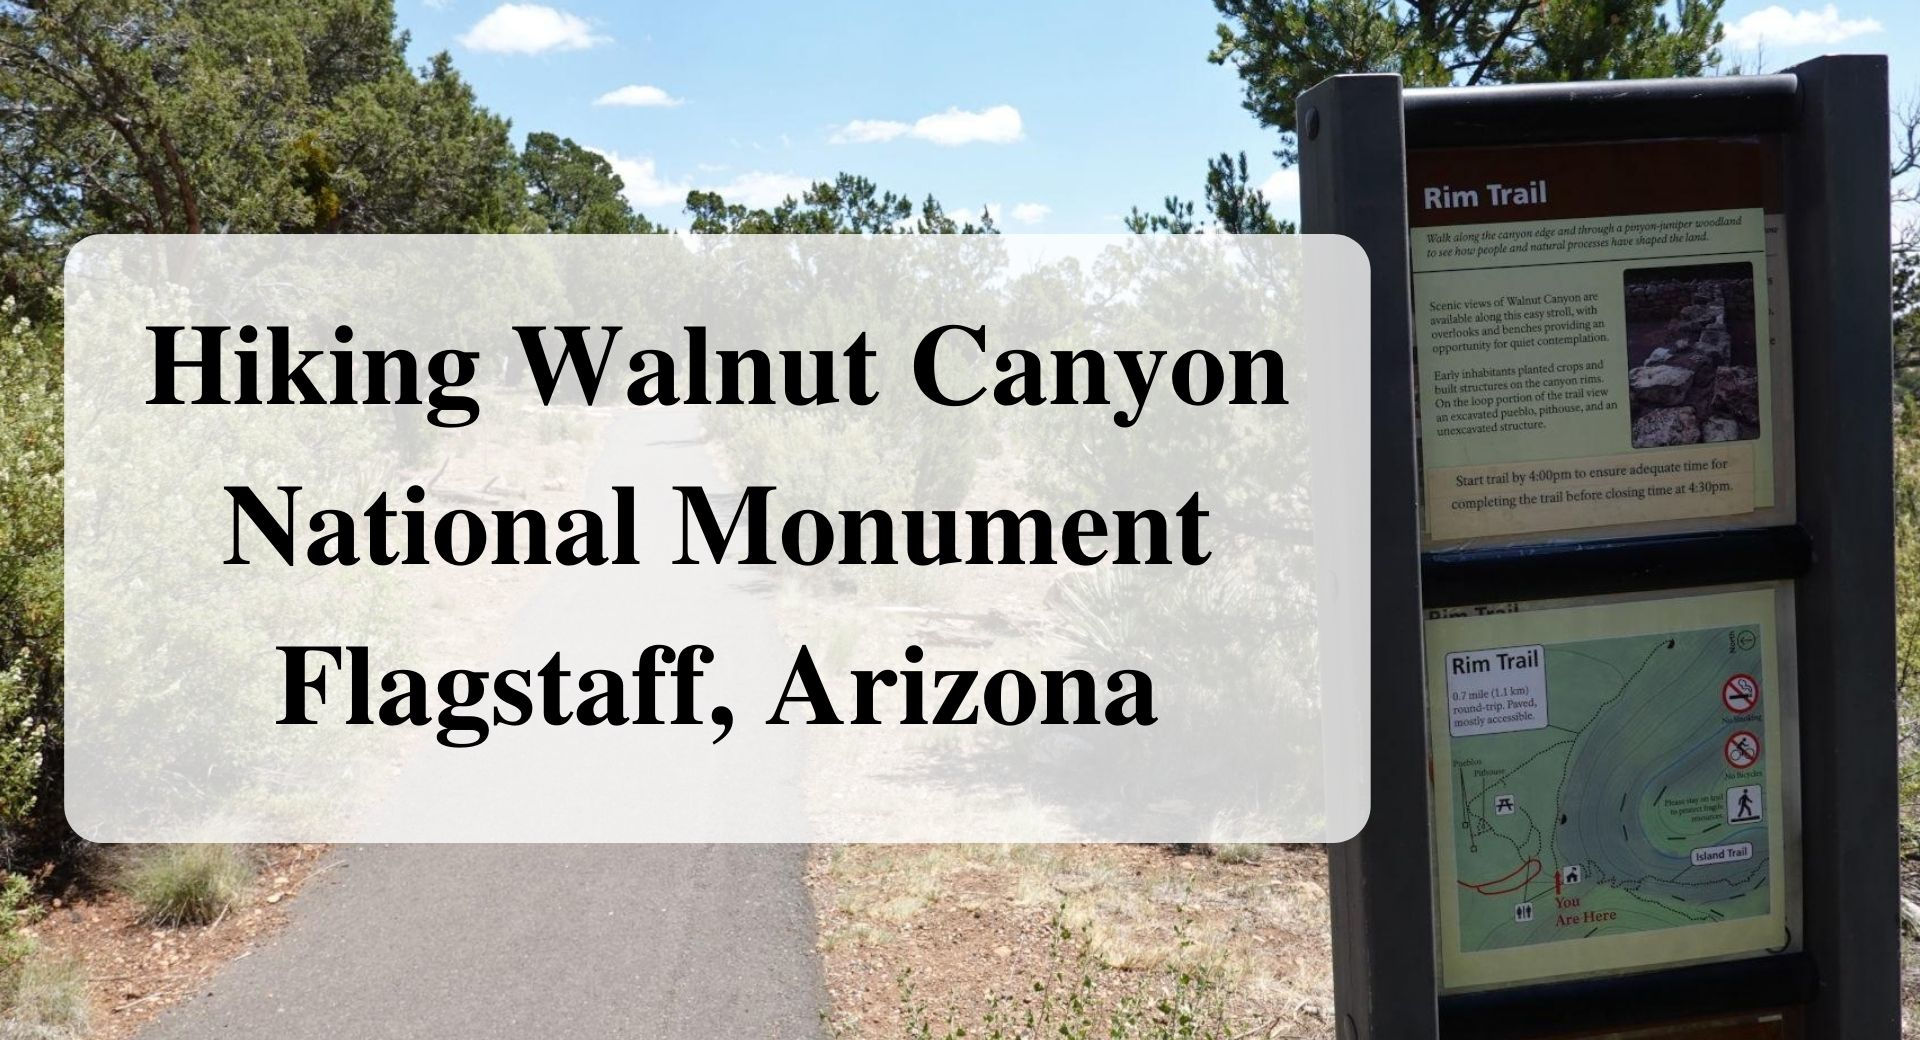 Hiking Walnut Canyon National Monument Flagstaff, Arizona Forever sabbatical